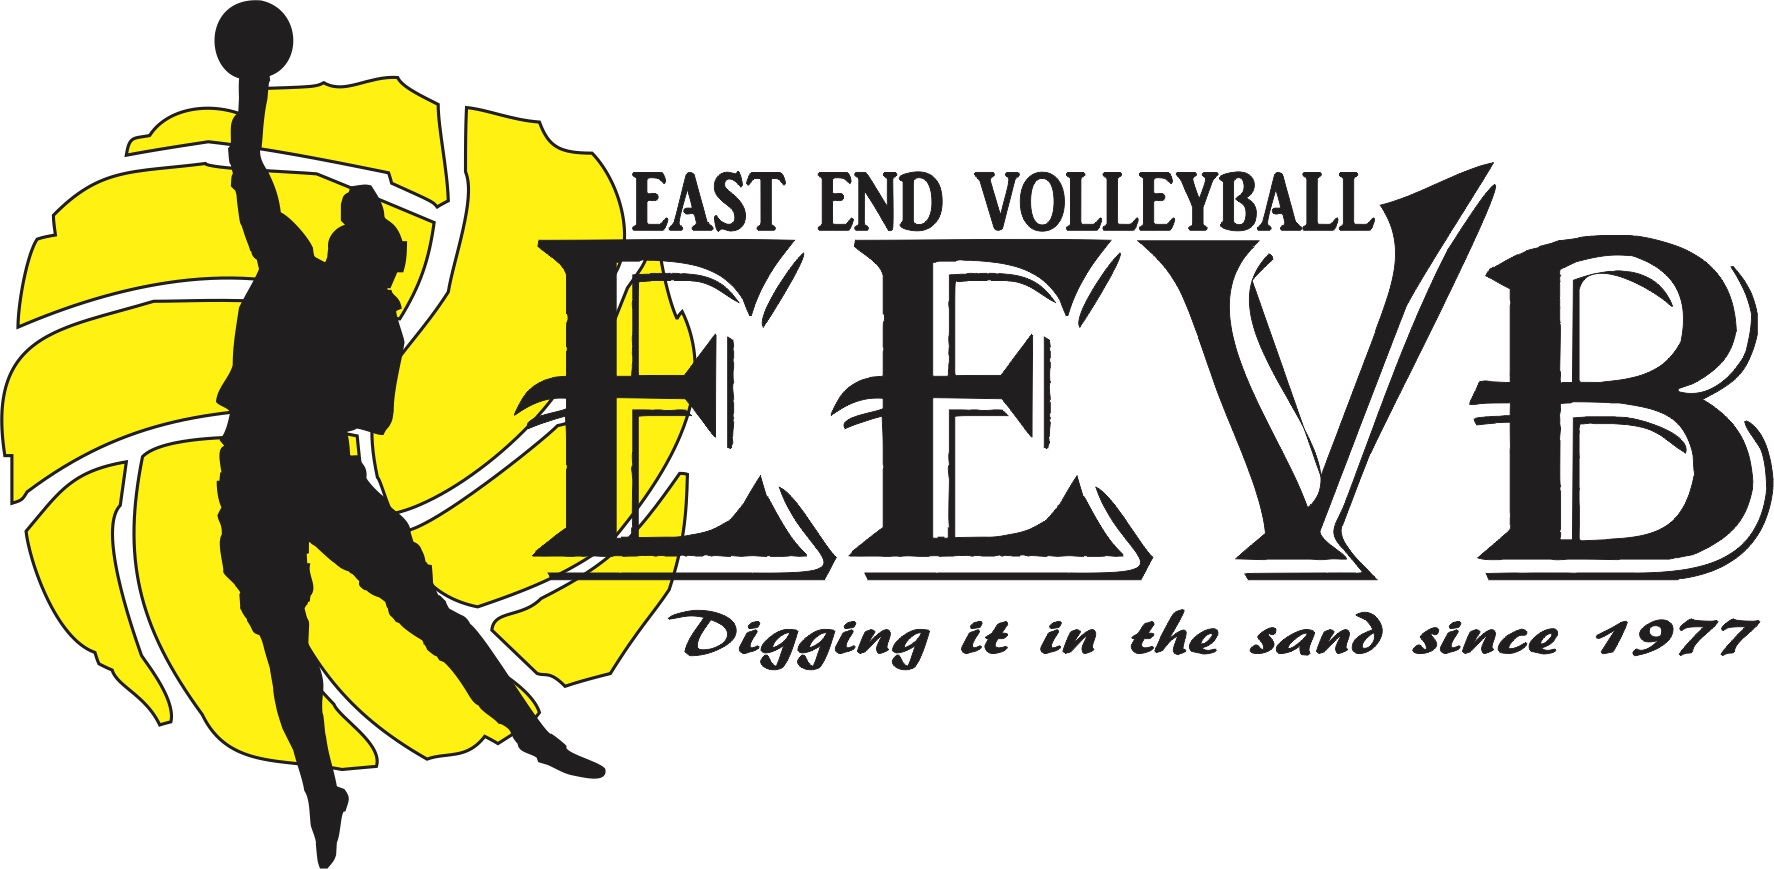 East End Volleyball